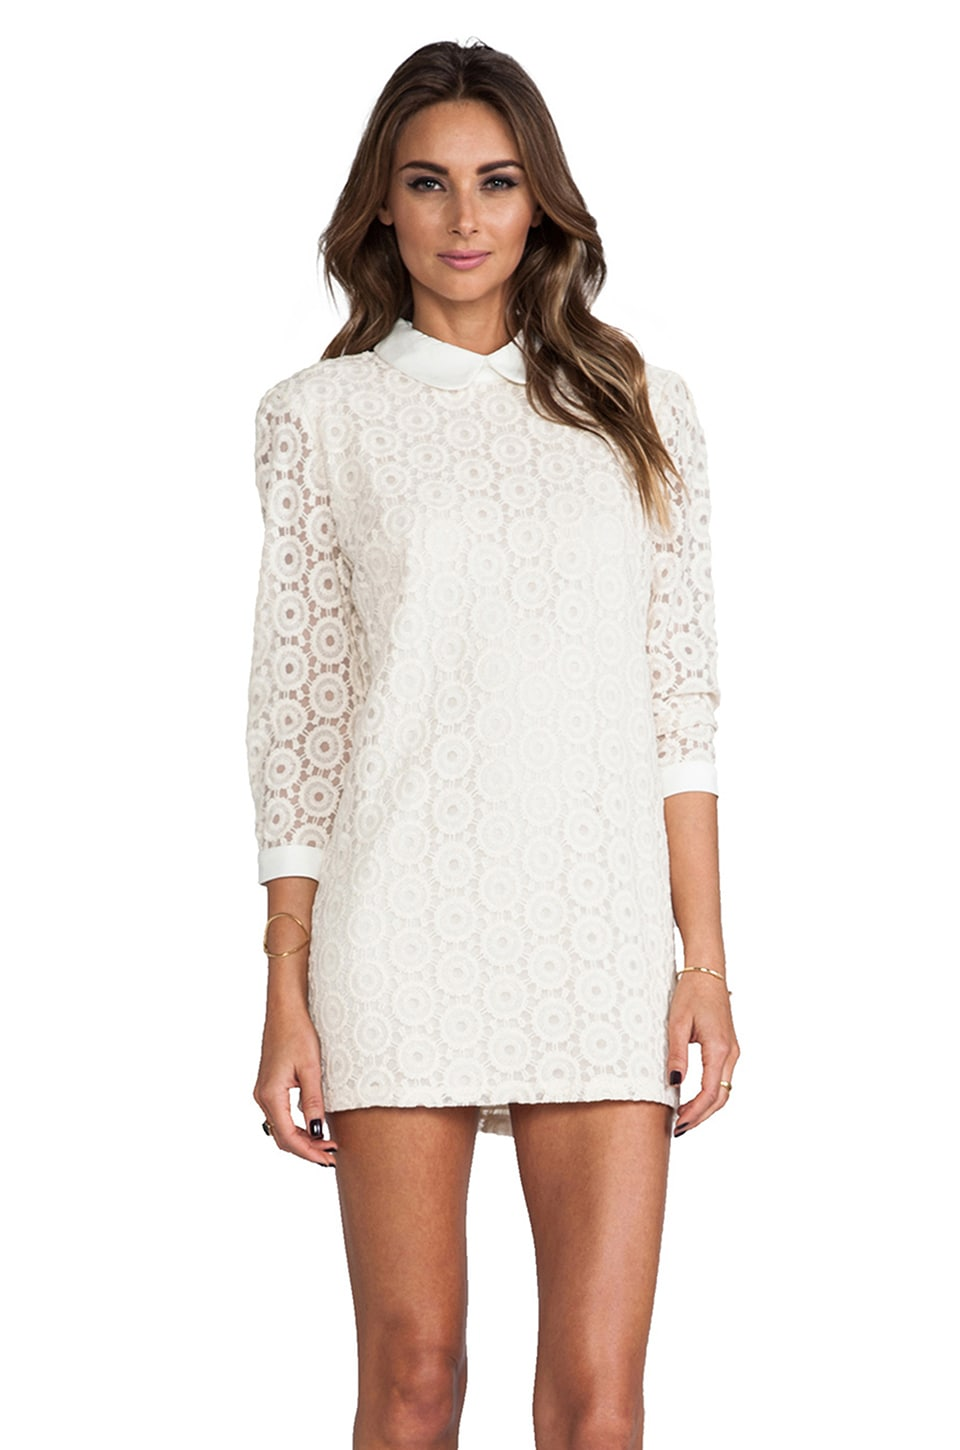 Lovers + Friends x Monica Rose Rosita Dress in Bone Lace